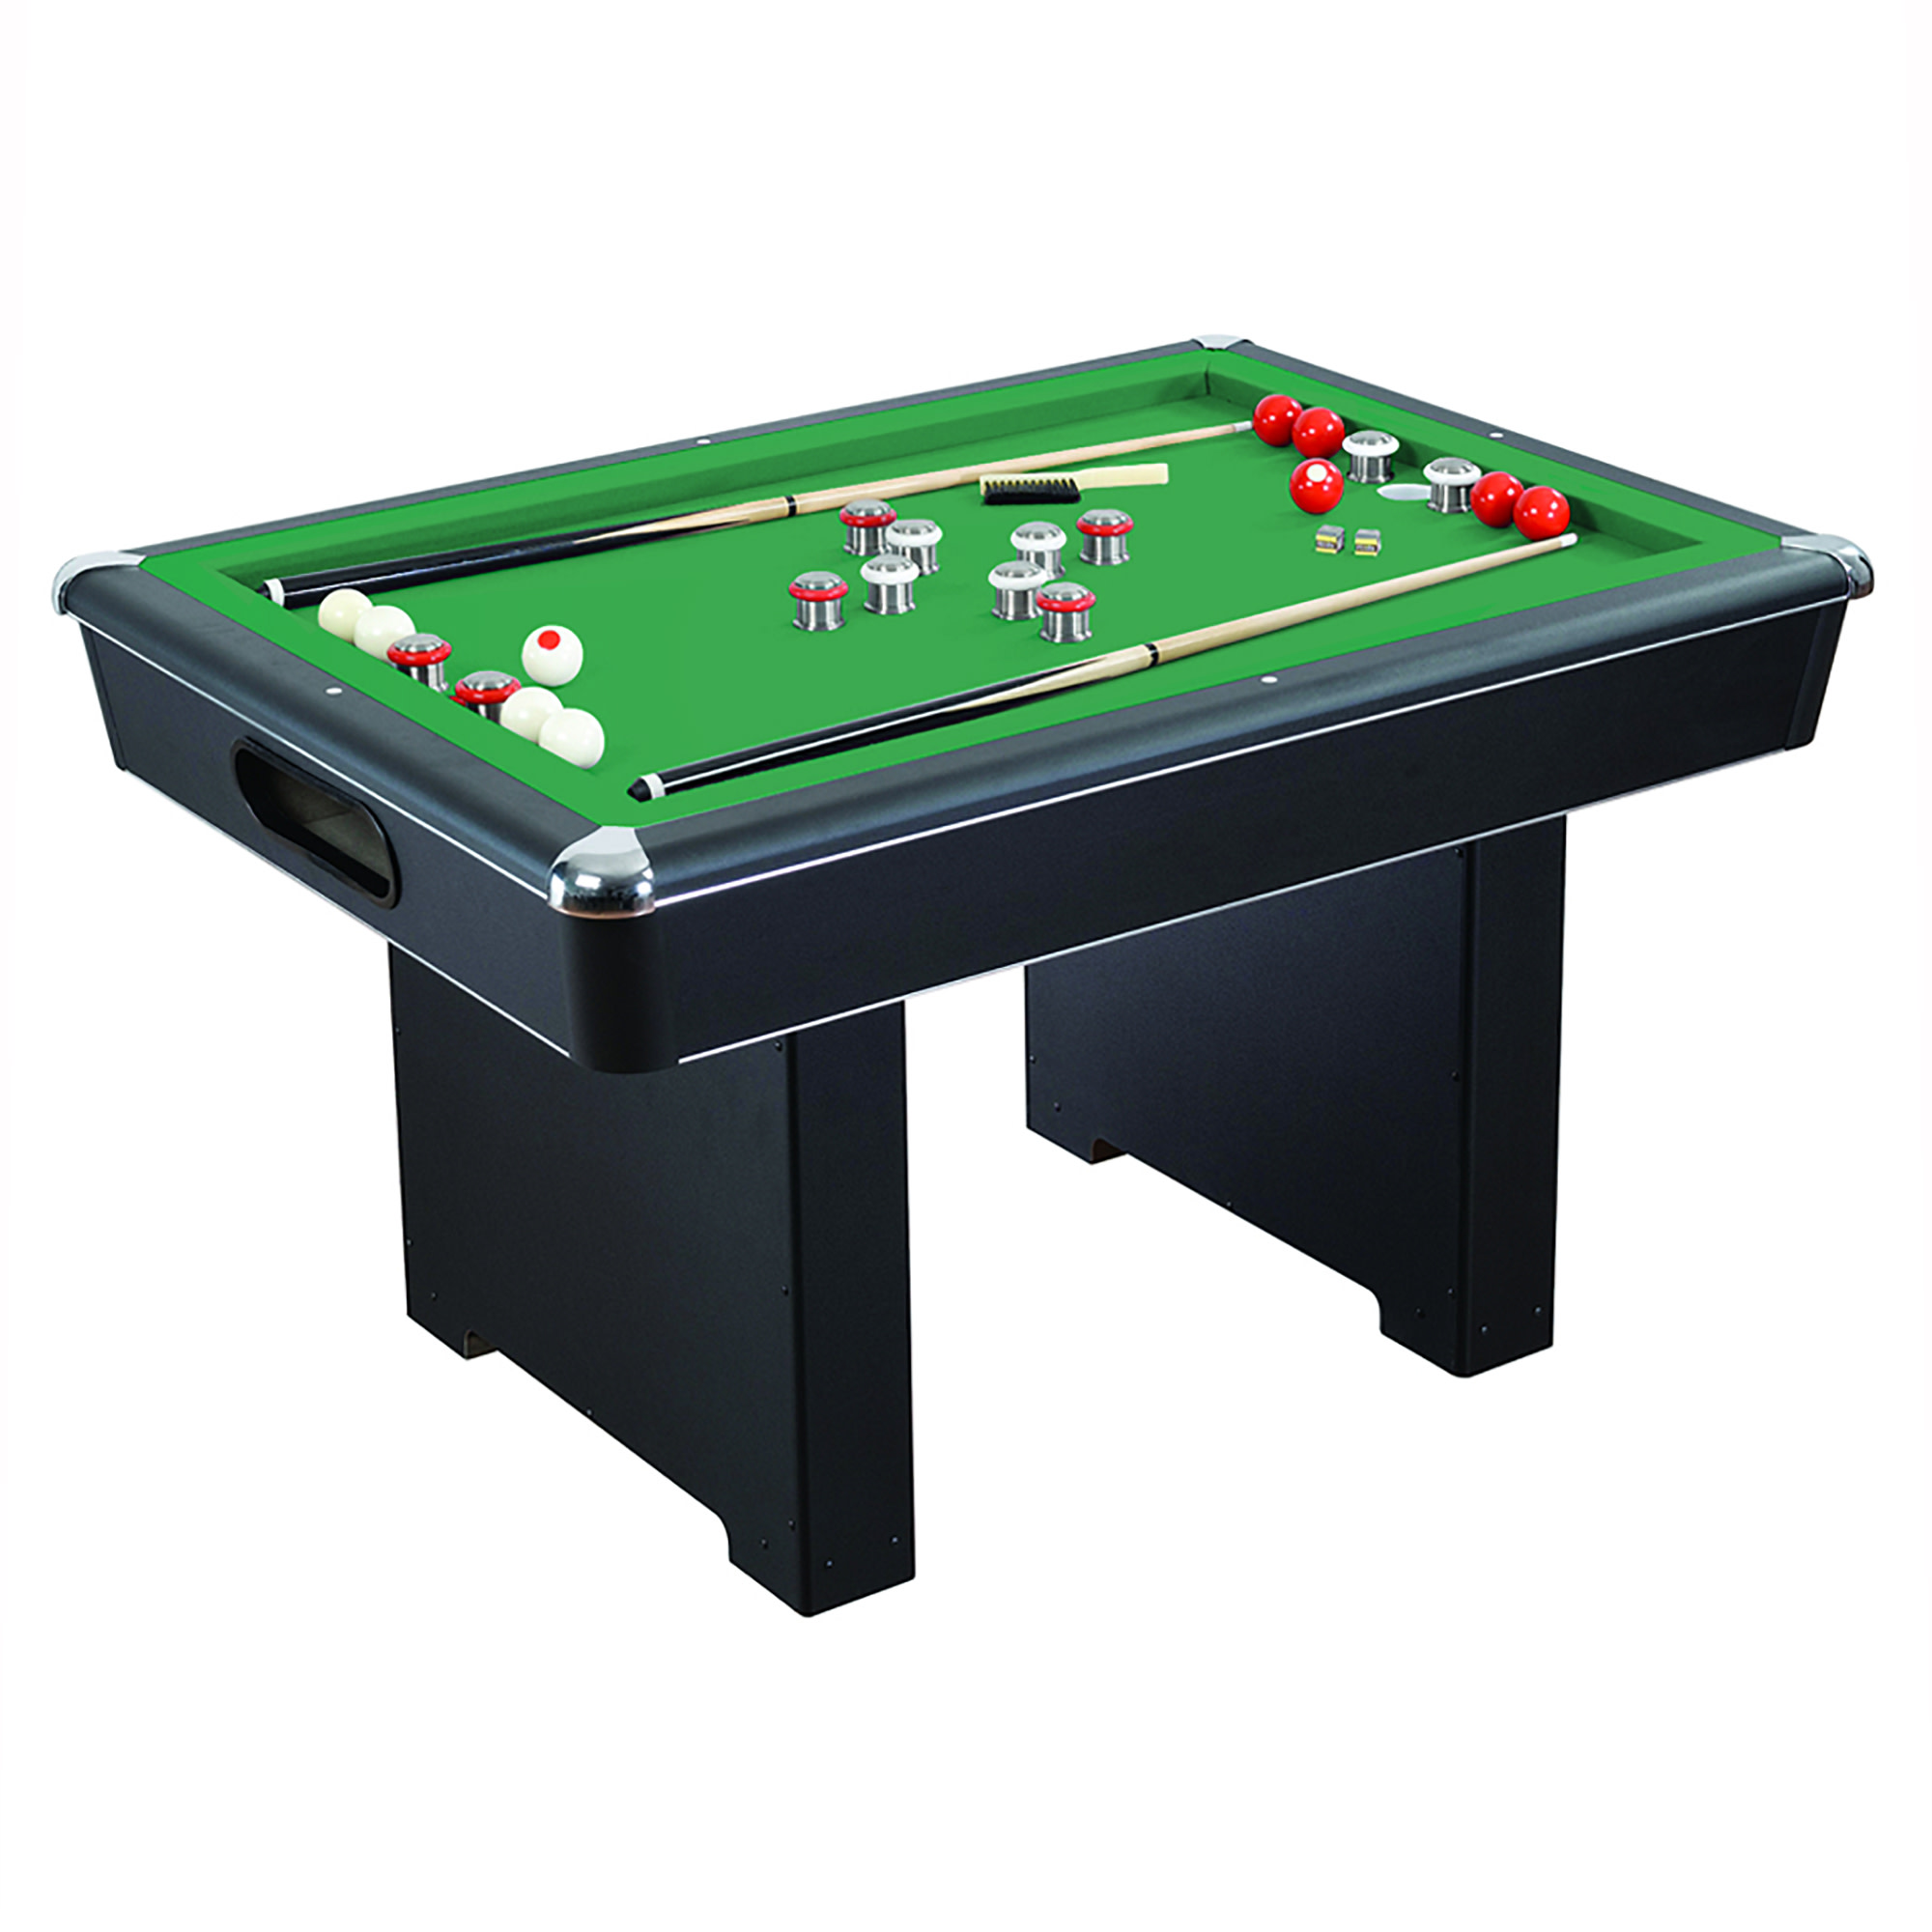 Hathaway Renegade Slate Bumper Pool Table, 54-In, Green